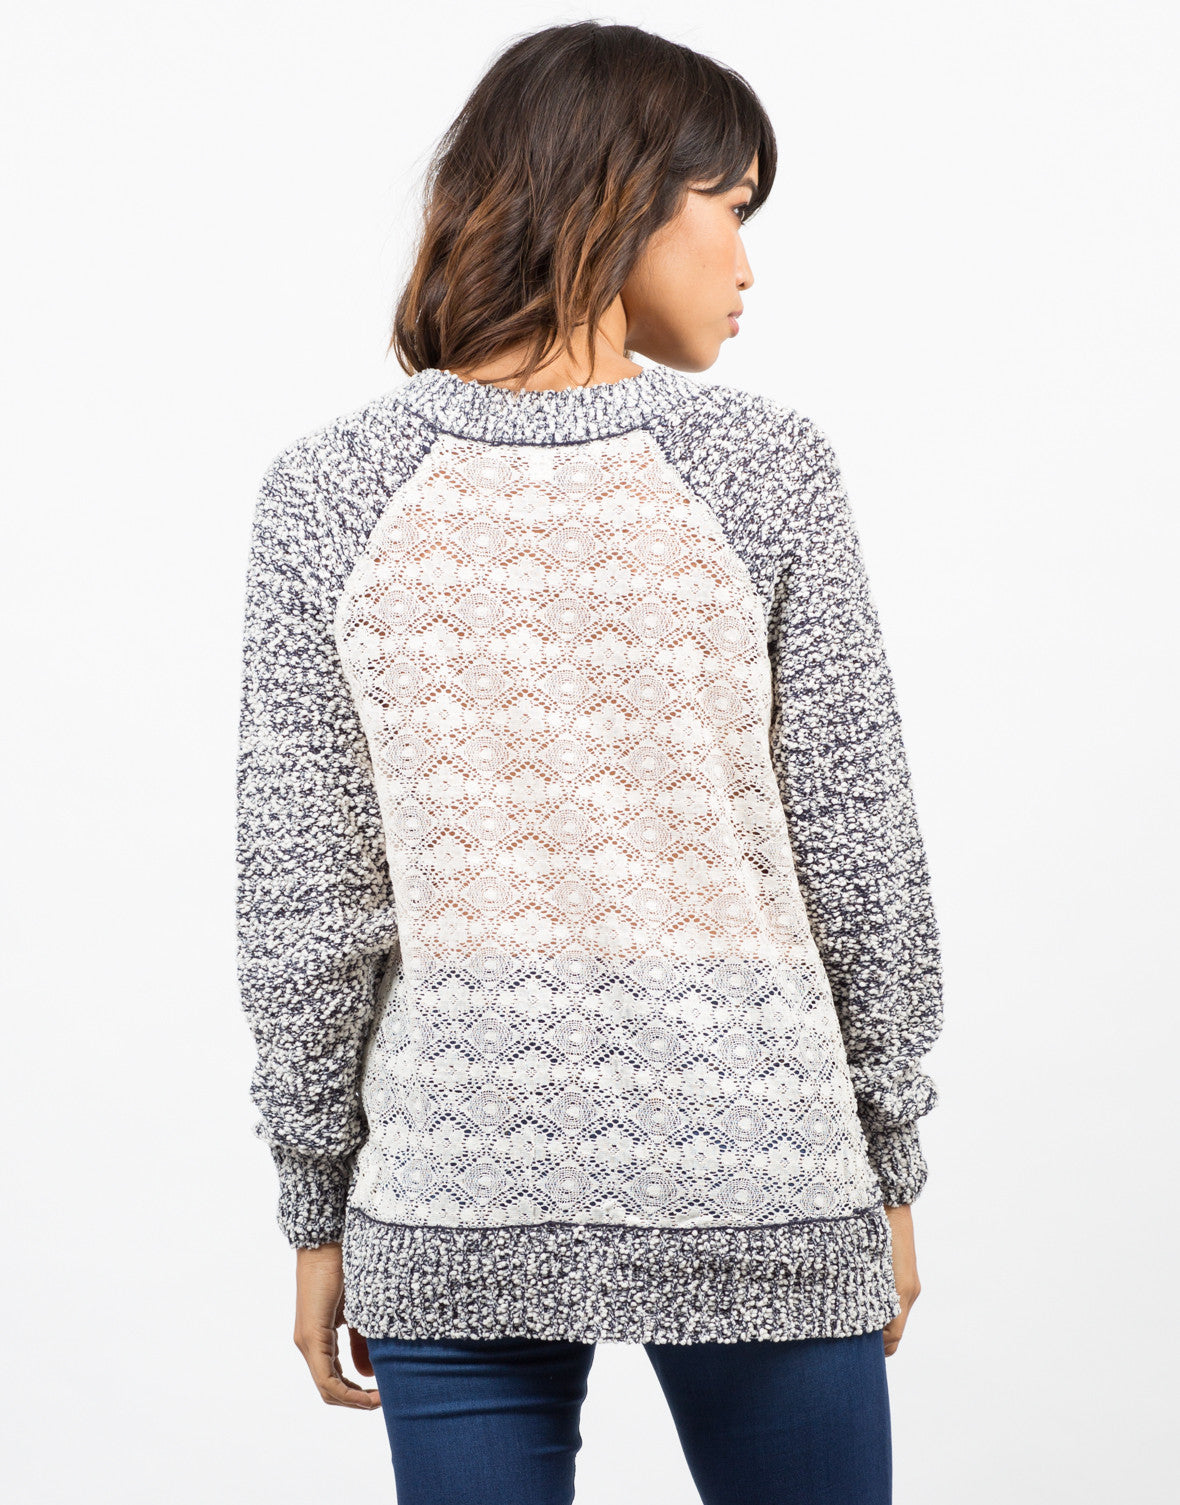 Back View of Knit Lace Back Sweater